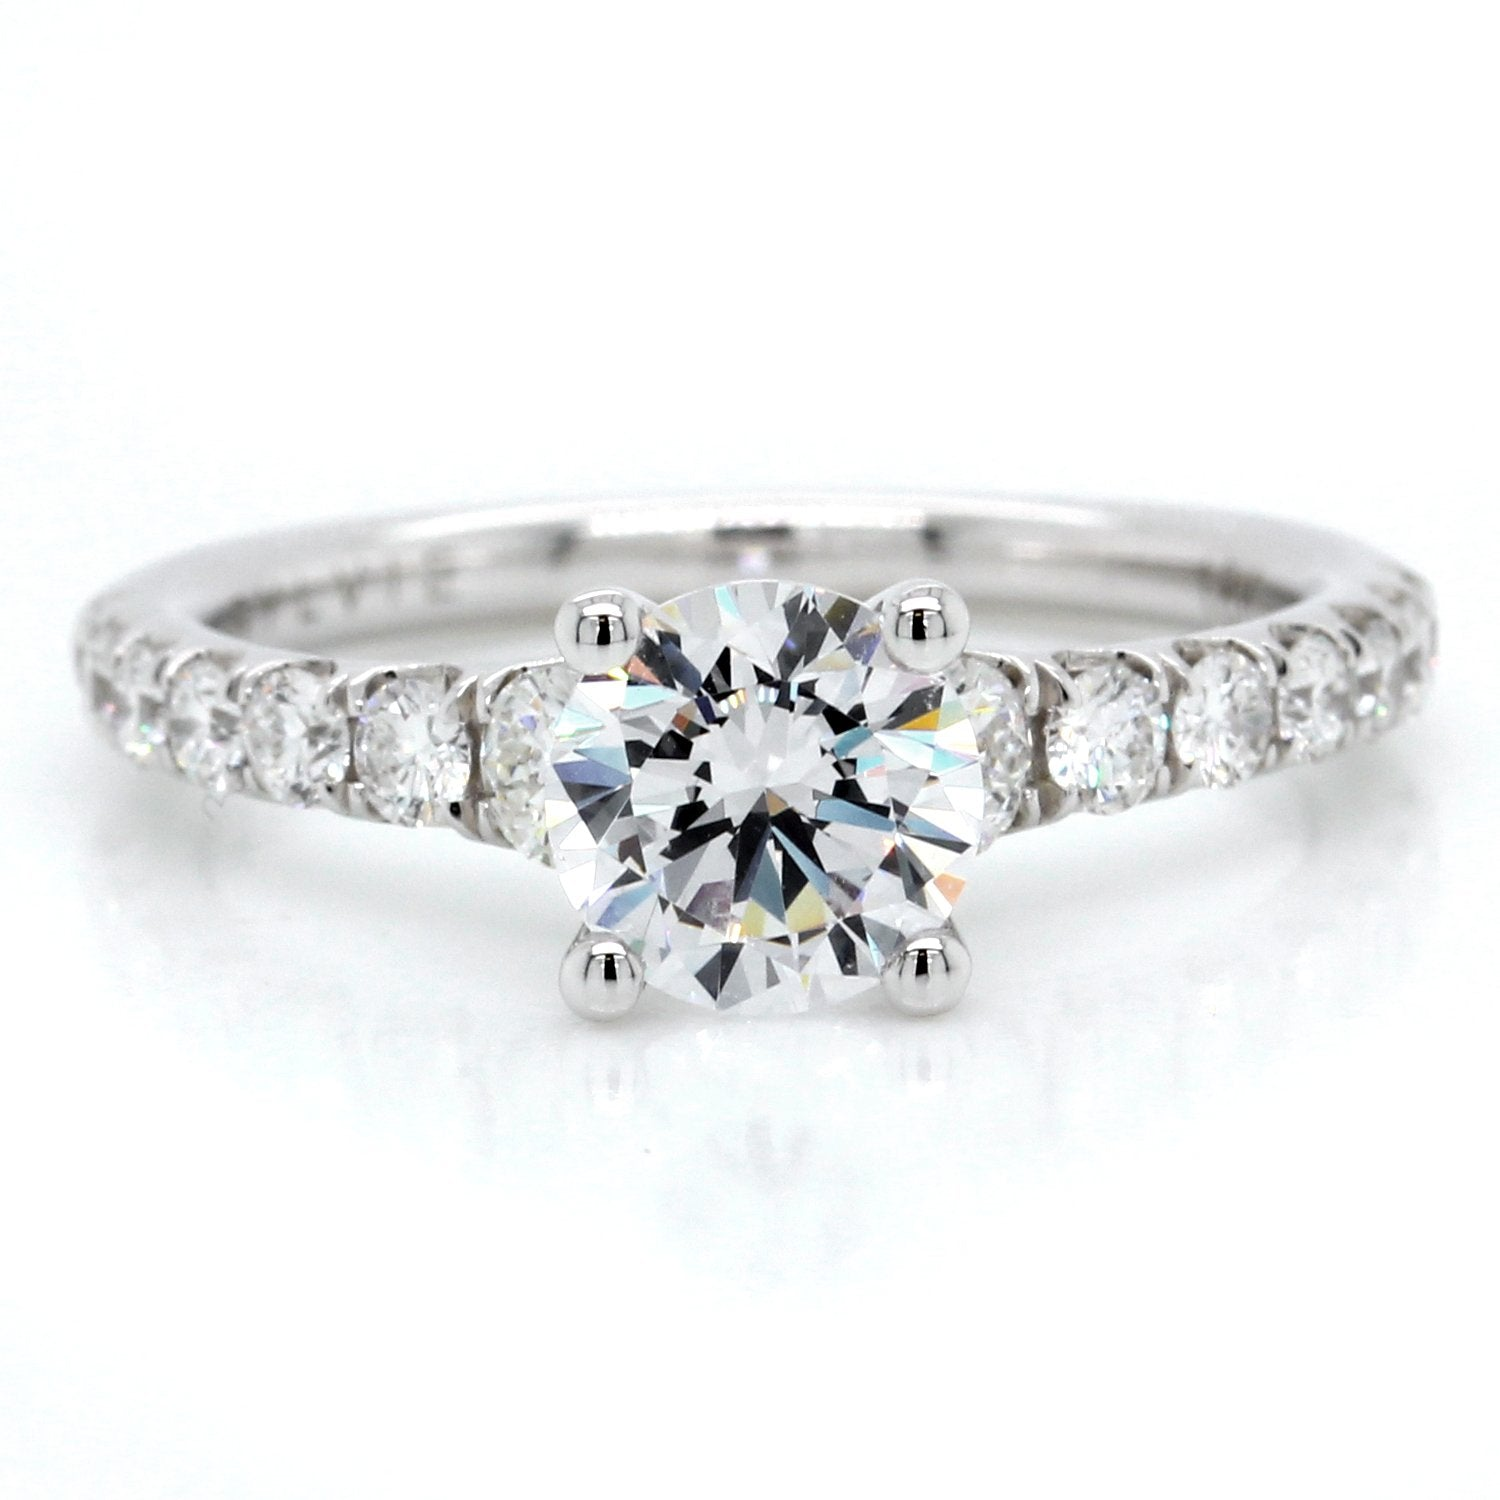 18K White Gold Graduated Shoulder Engagement Ring